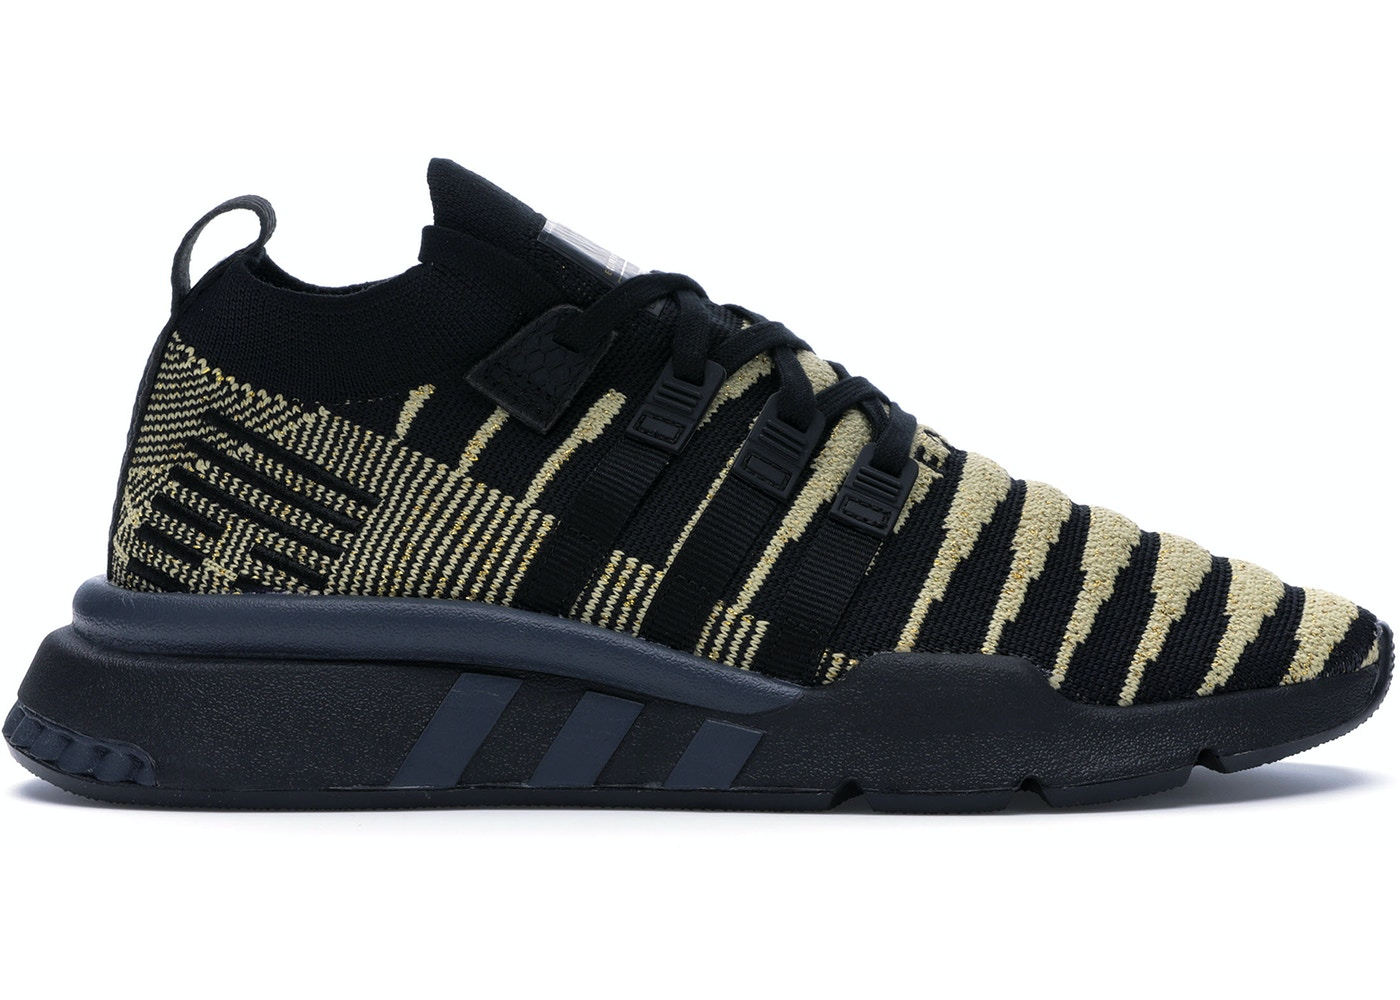 newest b3d33 9a13c adidas Other Shoes - Total Sold